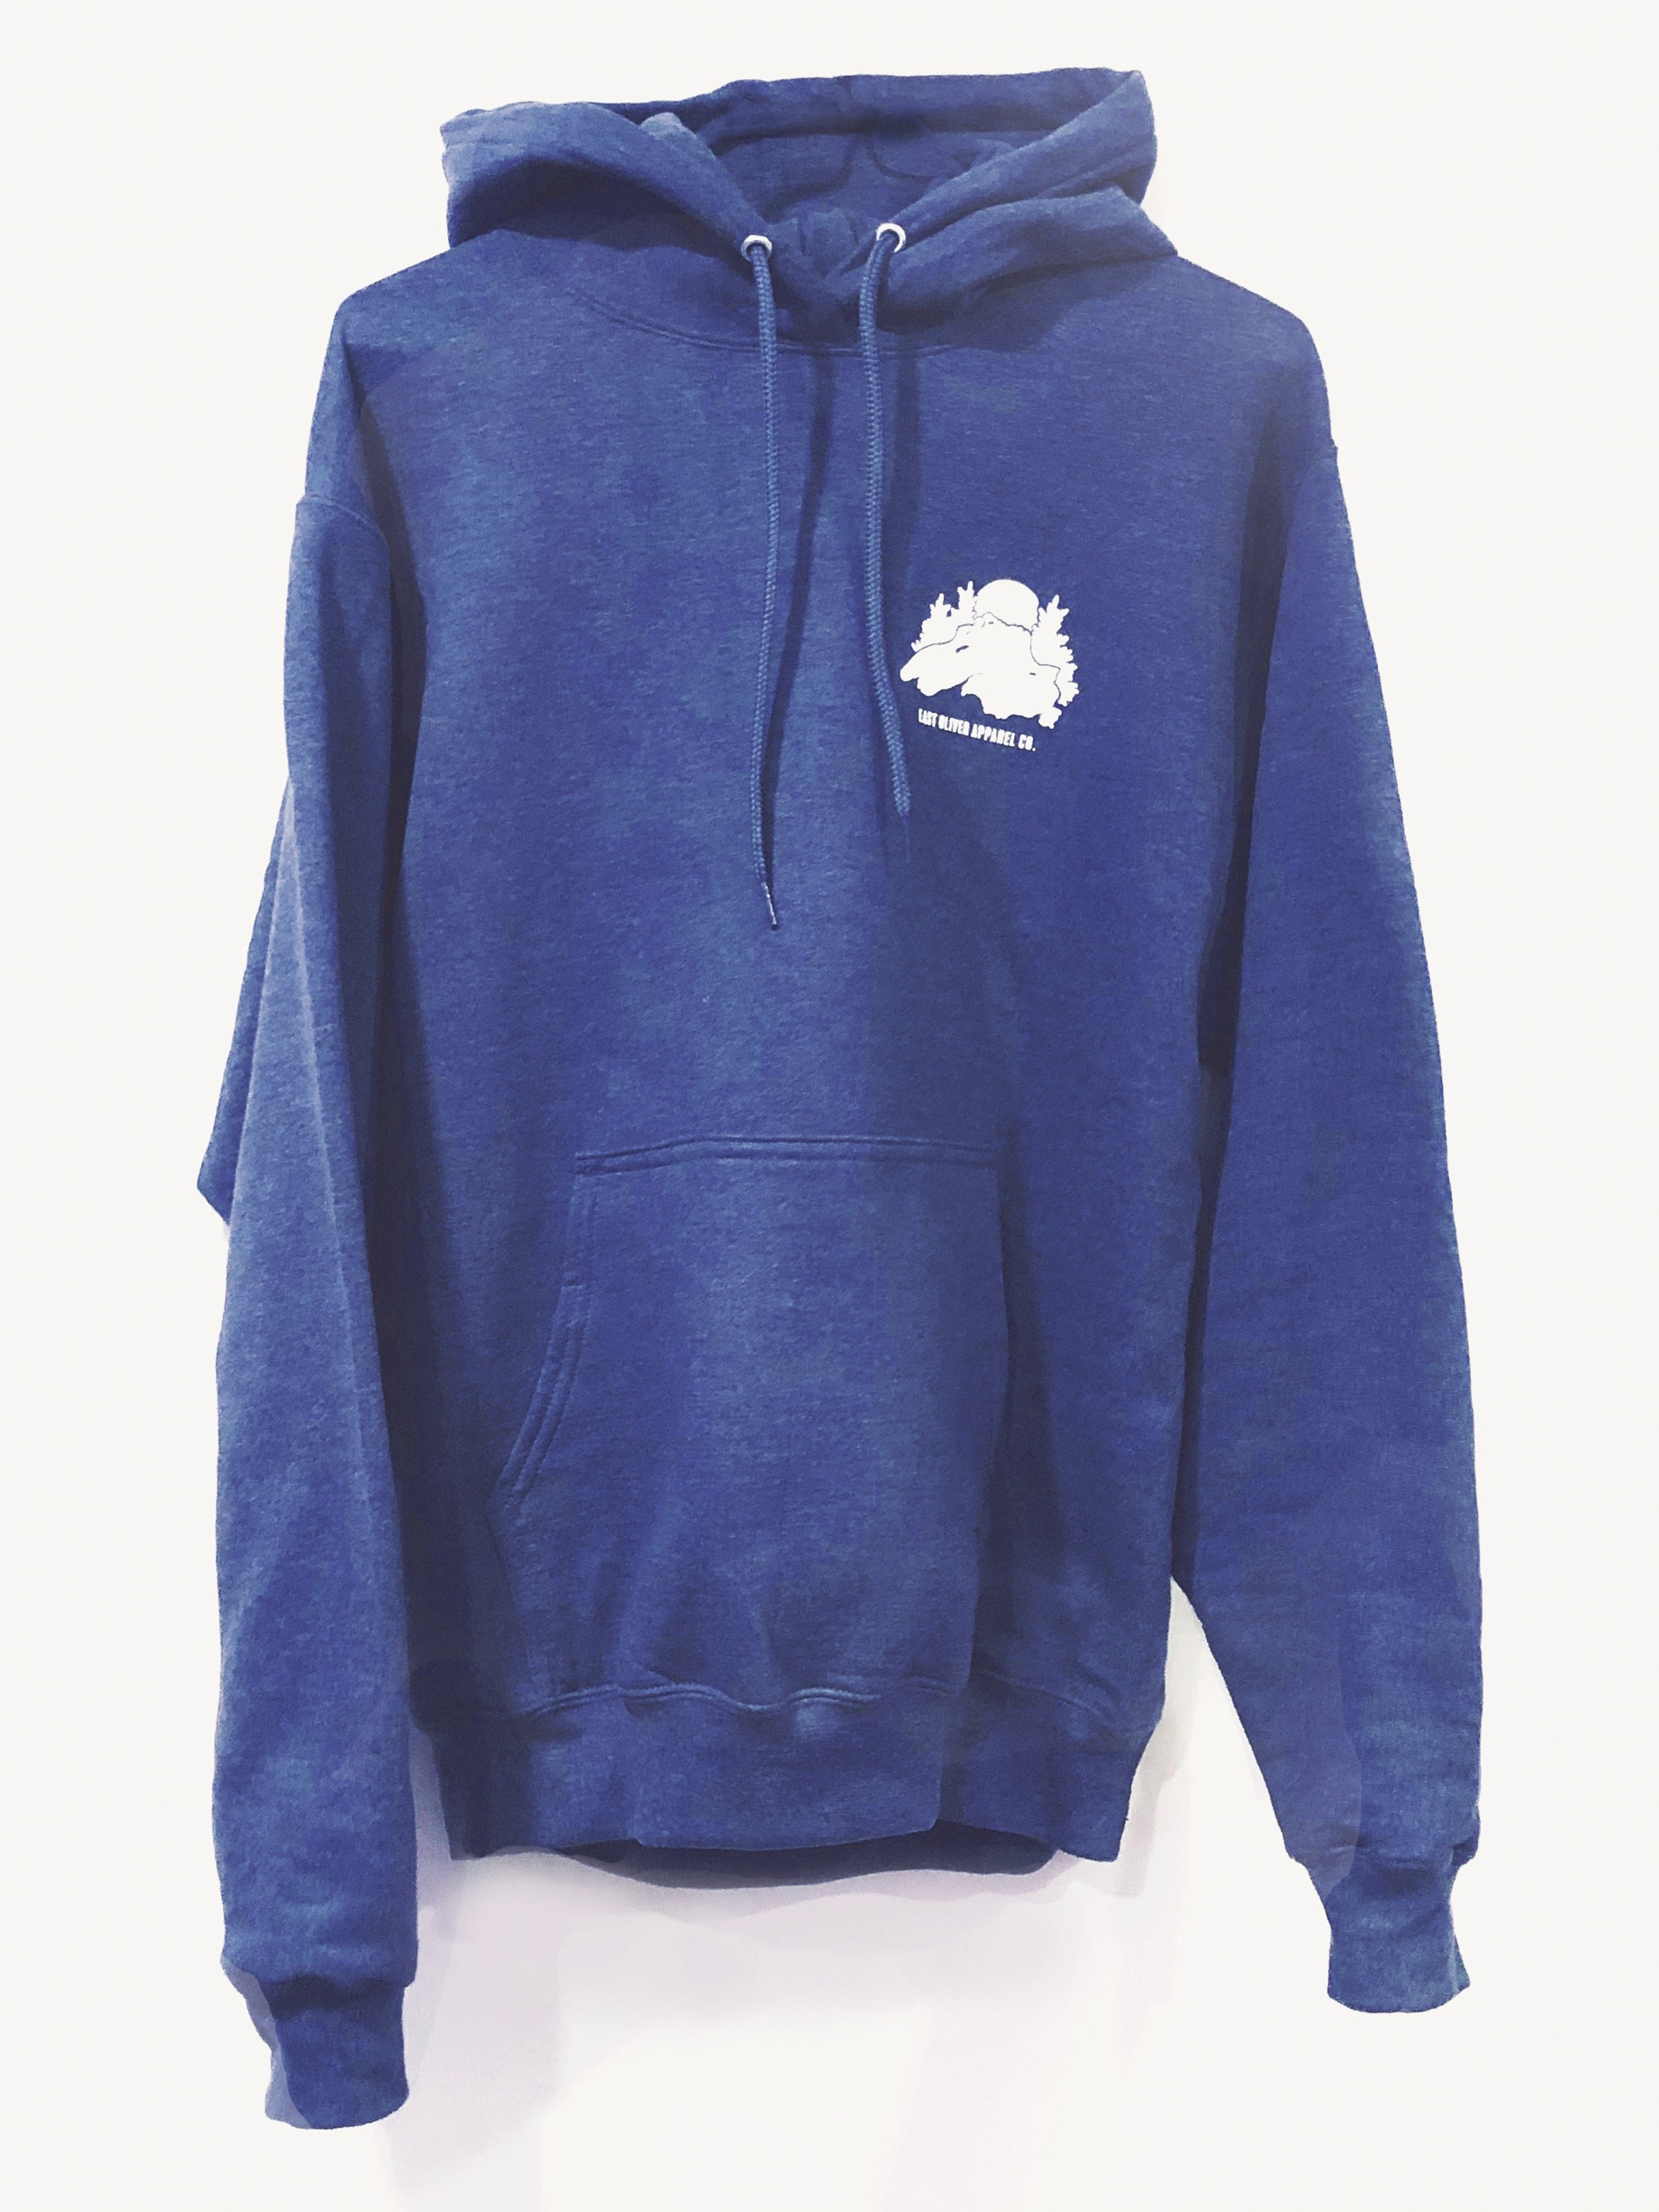 Superior Hoodie - East Oliver Apparel Co.